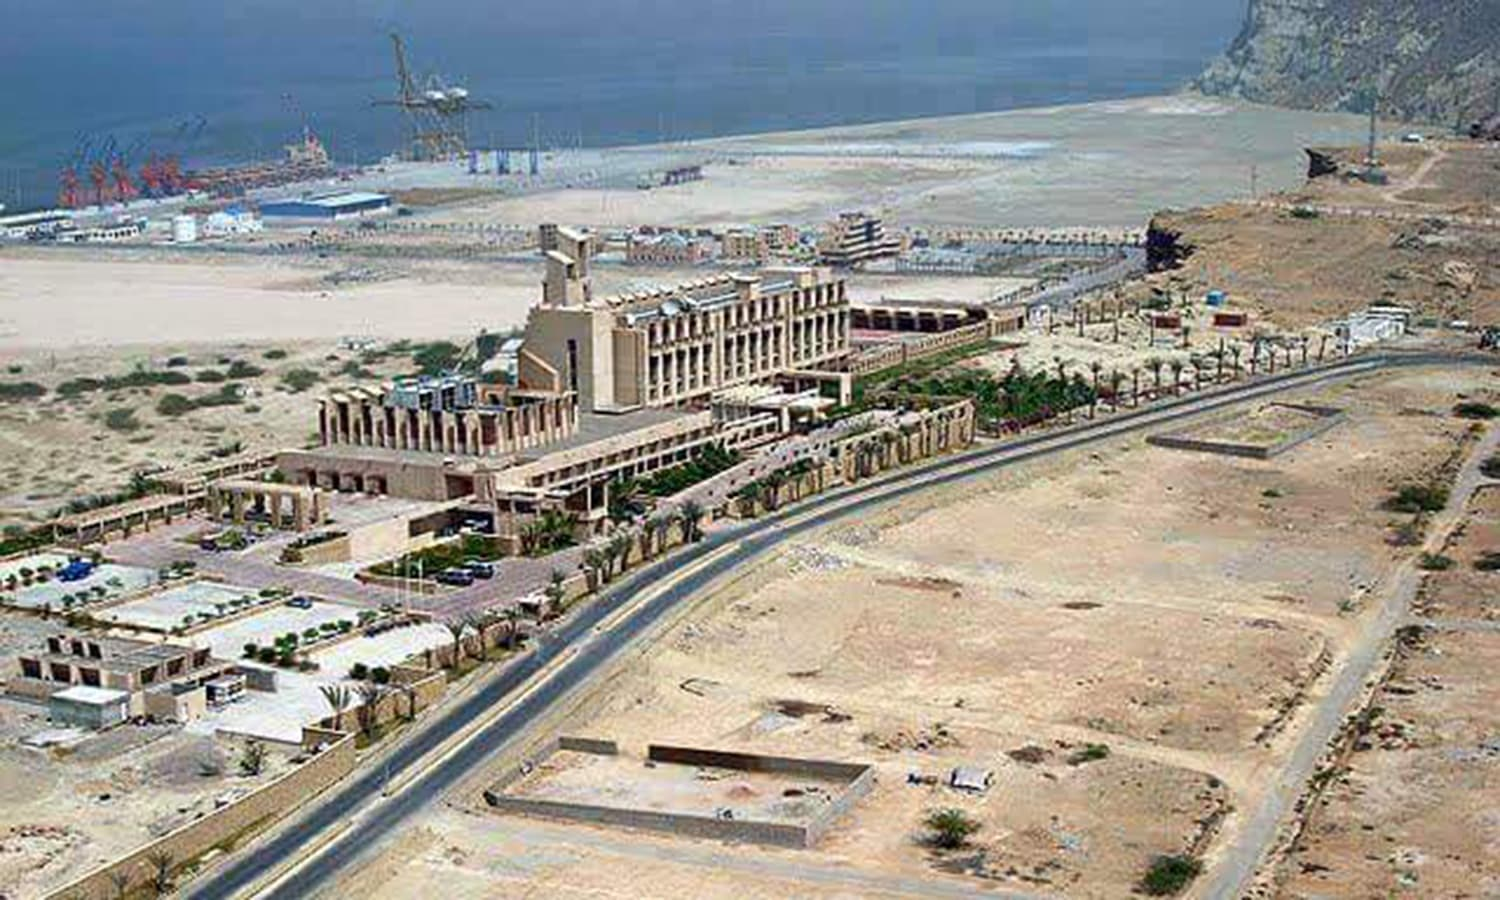 Balochistan's port city Gwadar being developed with the help of China. (Pic: Husnain Amjad)